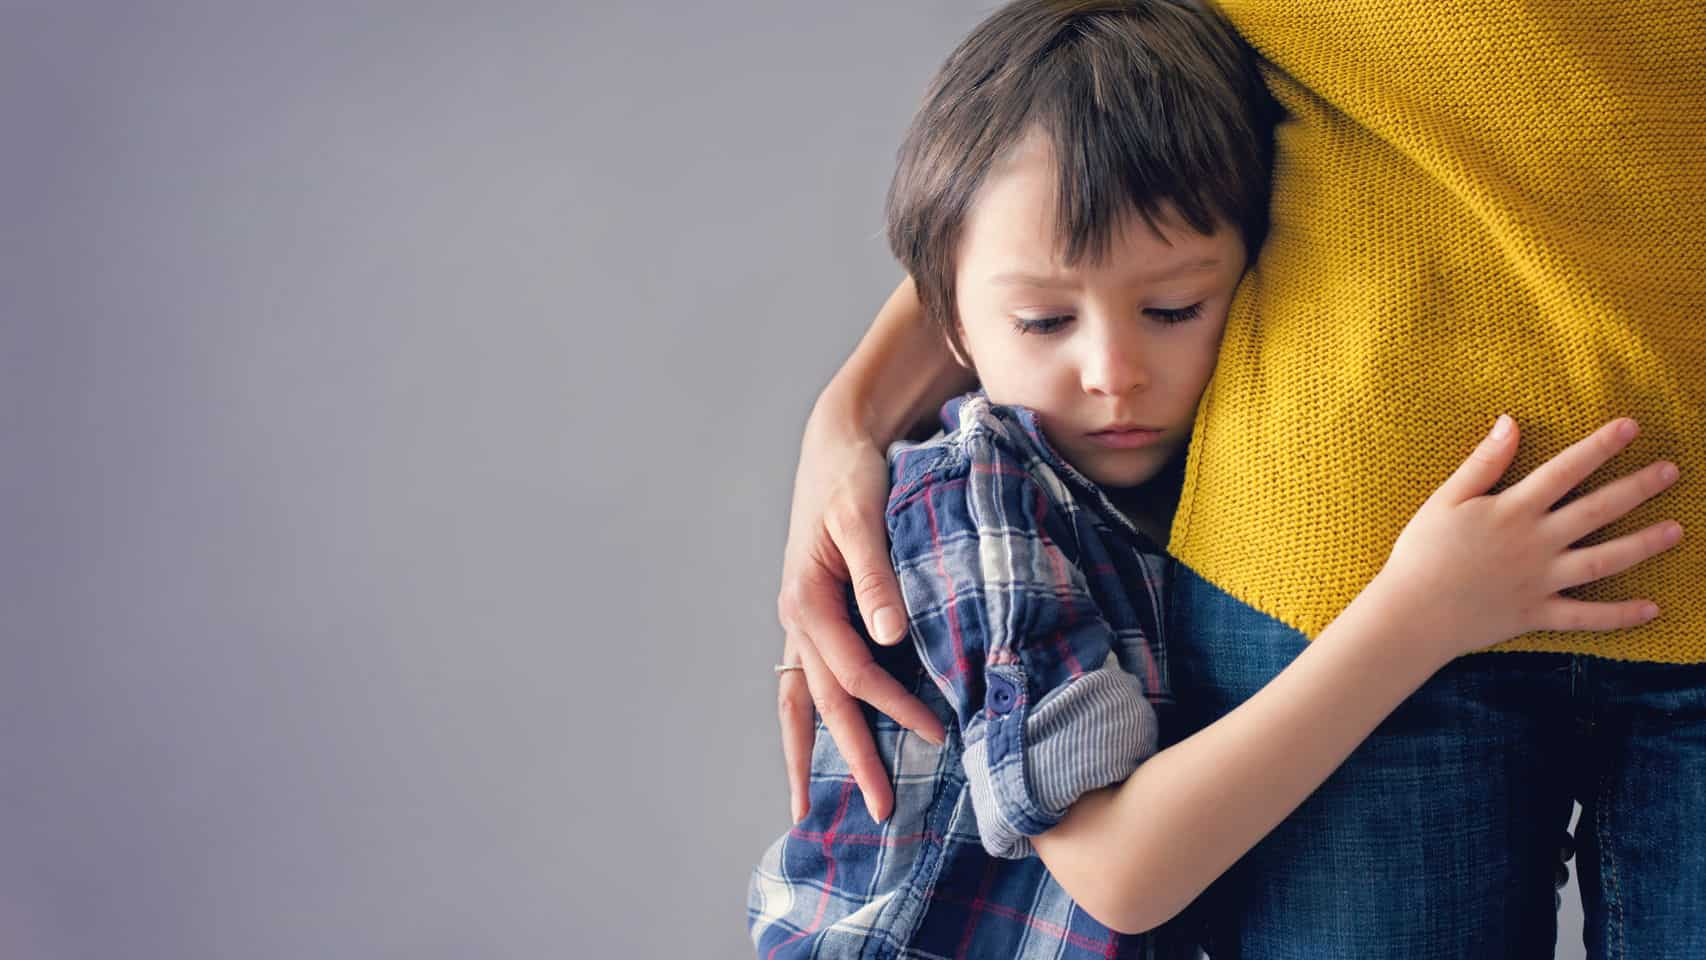 Project M:25 is provides tools for parents to help children cope with stress and anxiety